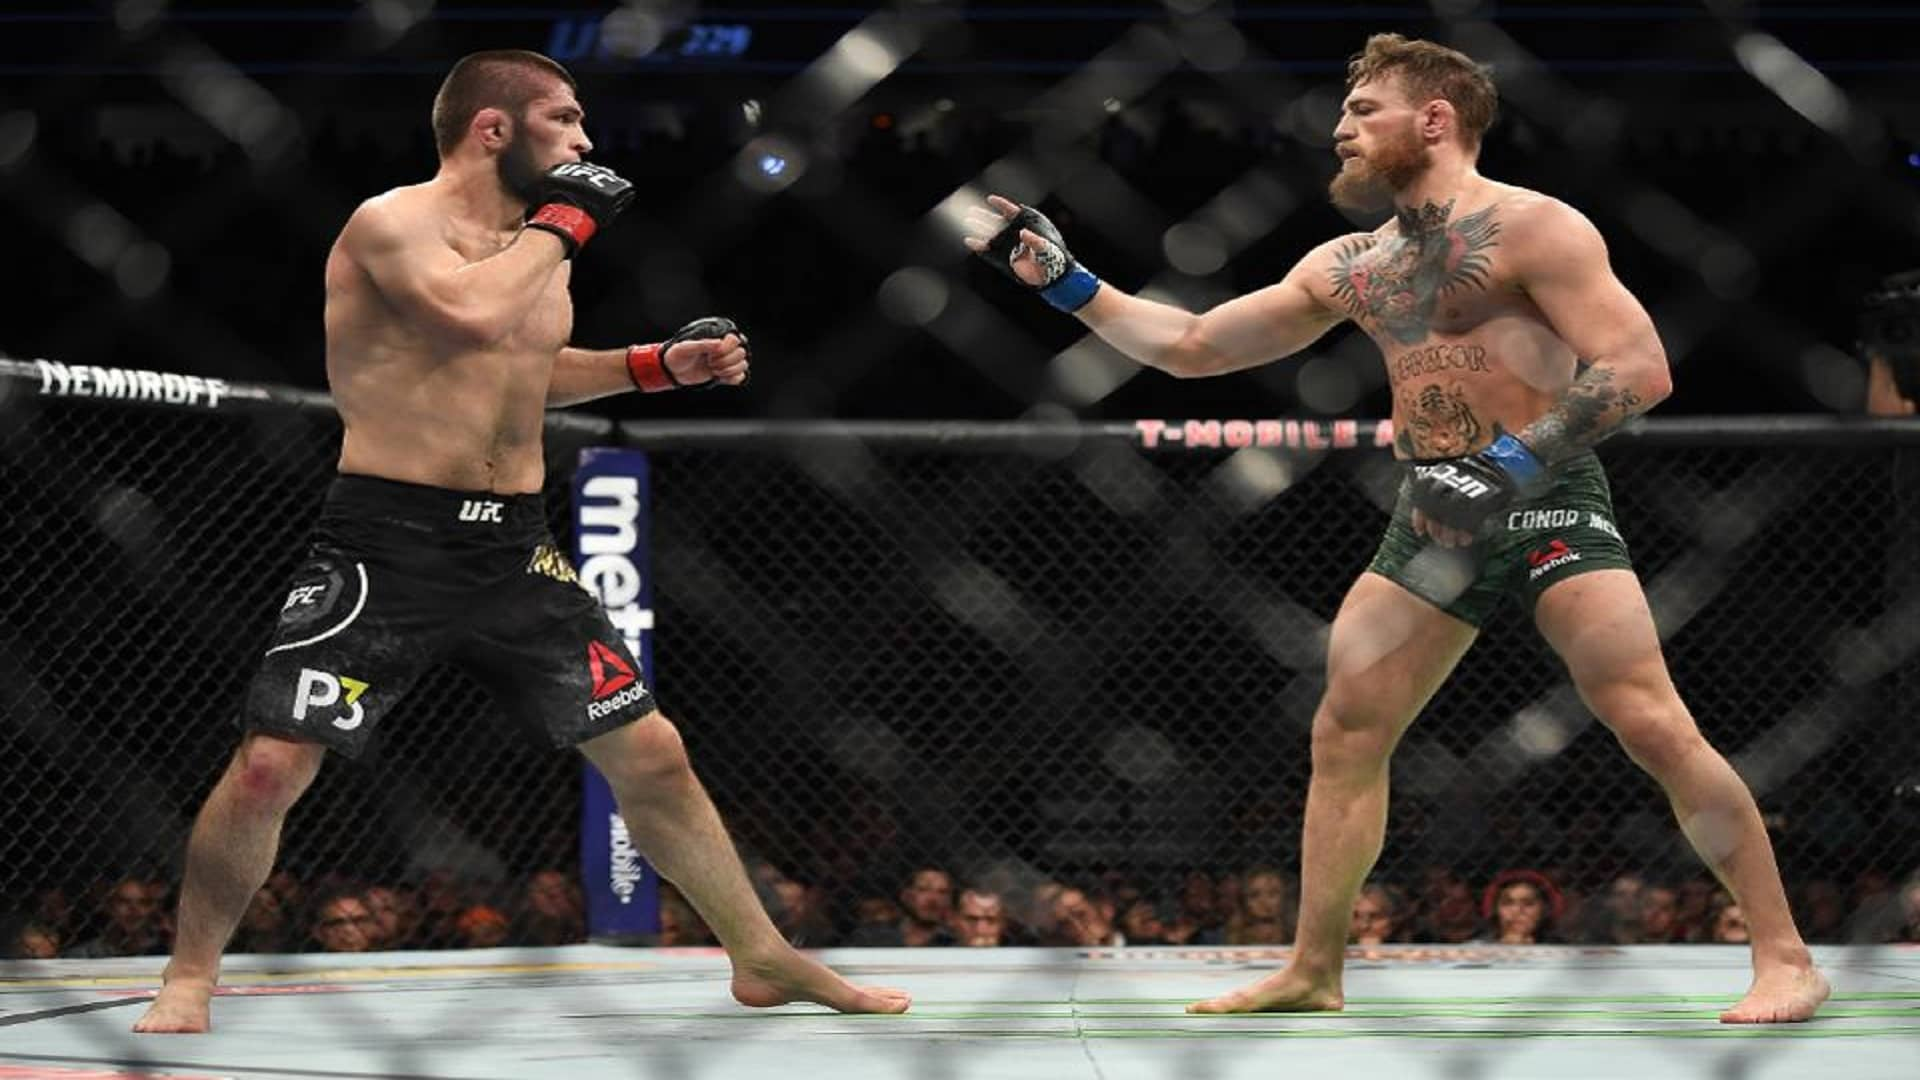 https://lockerroom.in/blog/view/UFC-Weight-Classes-Explained